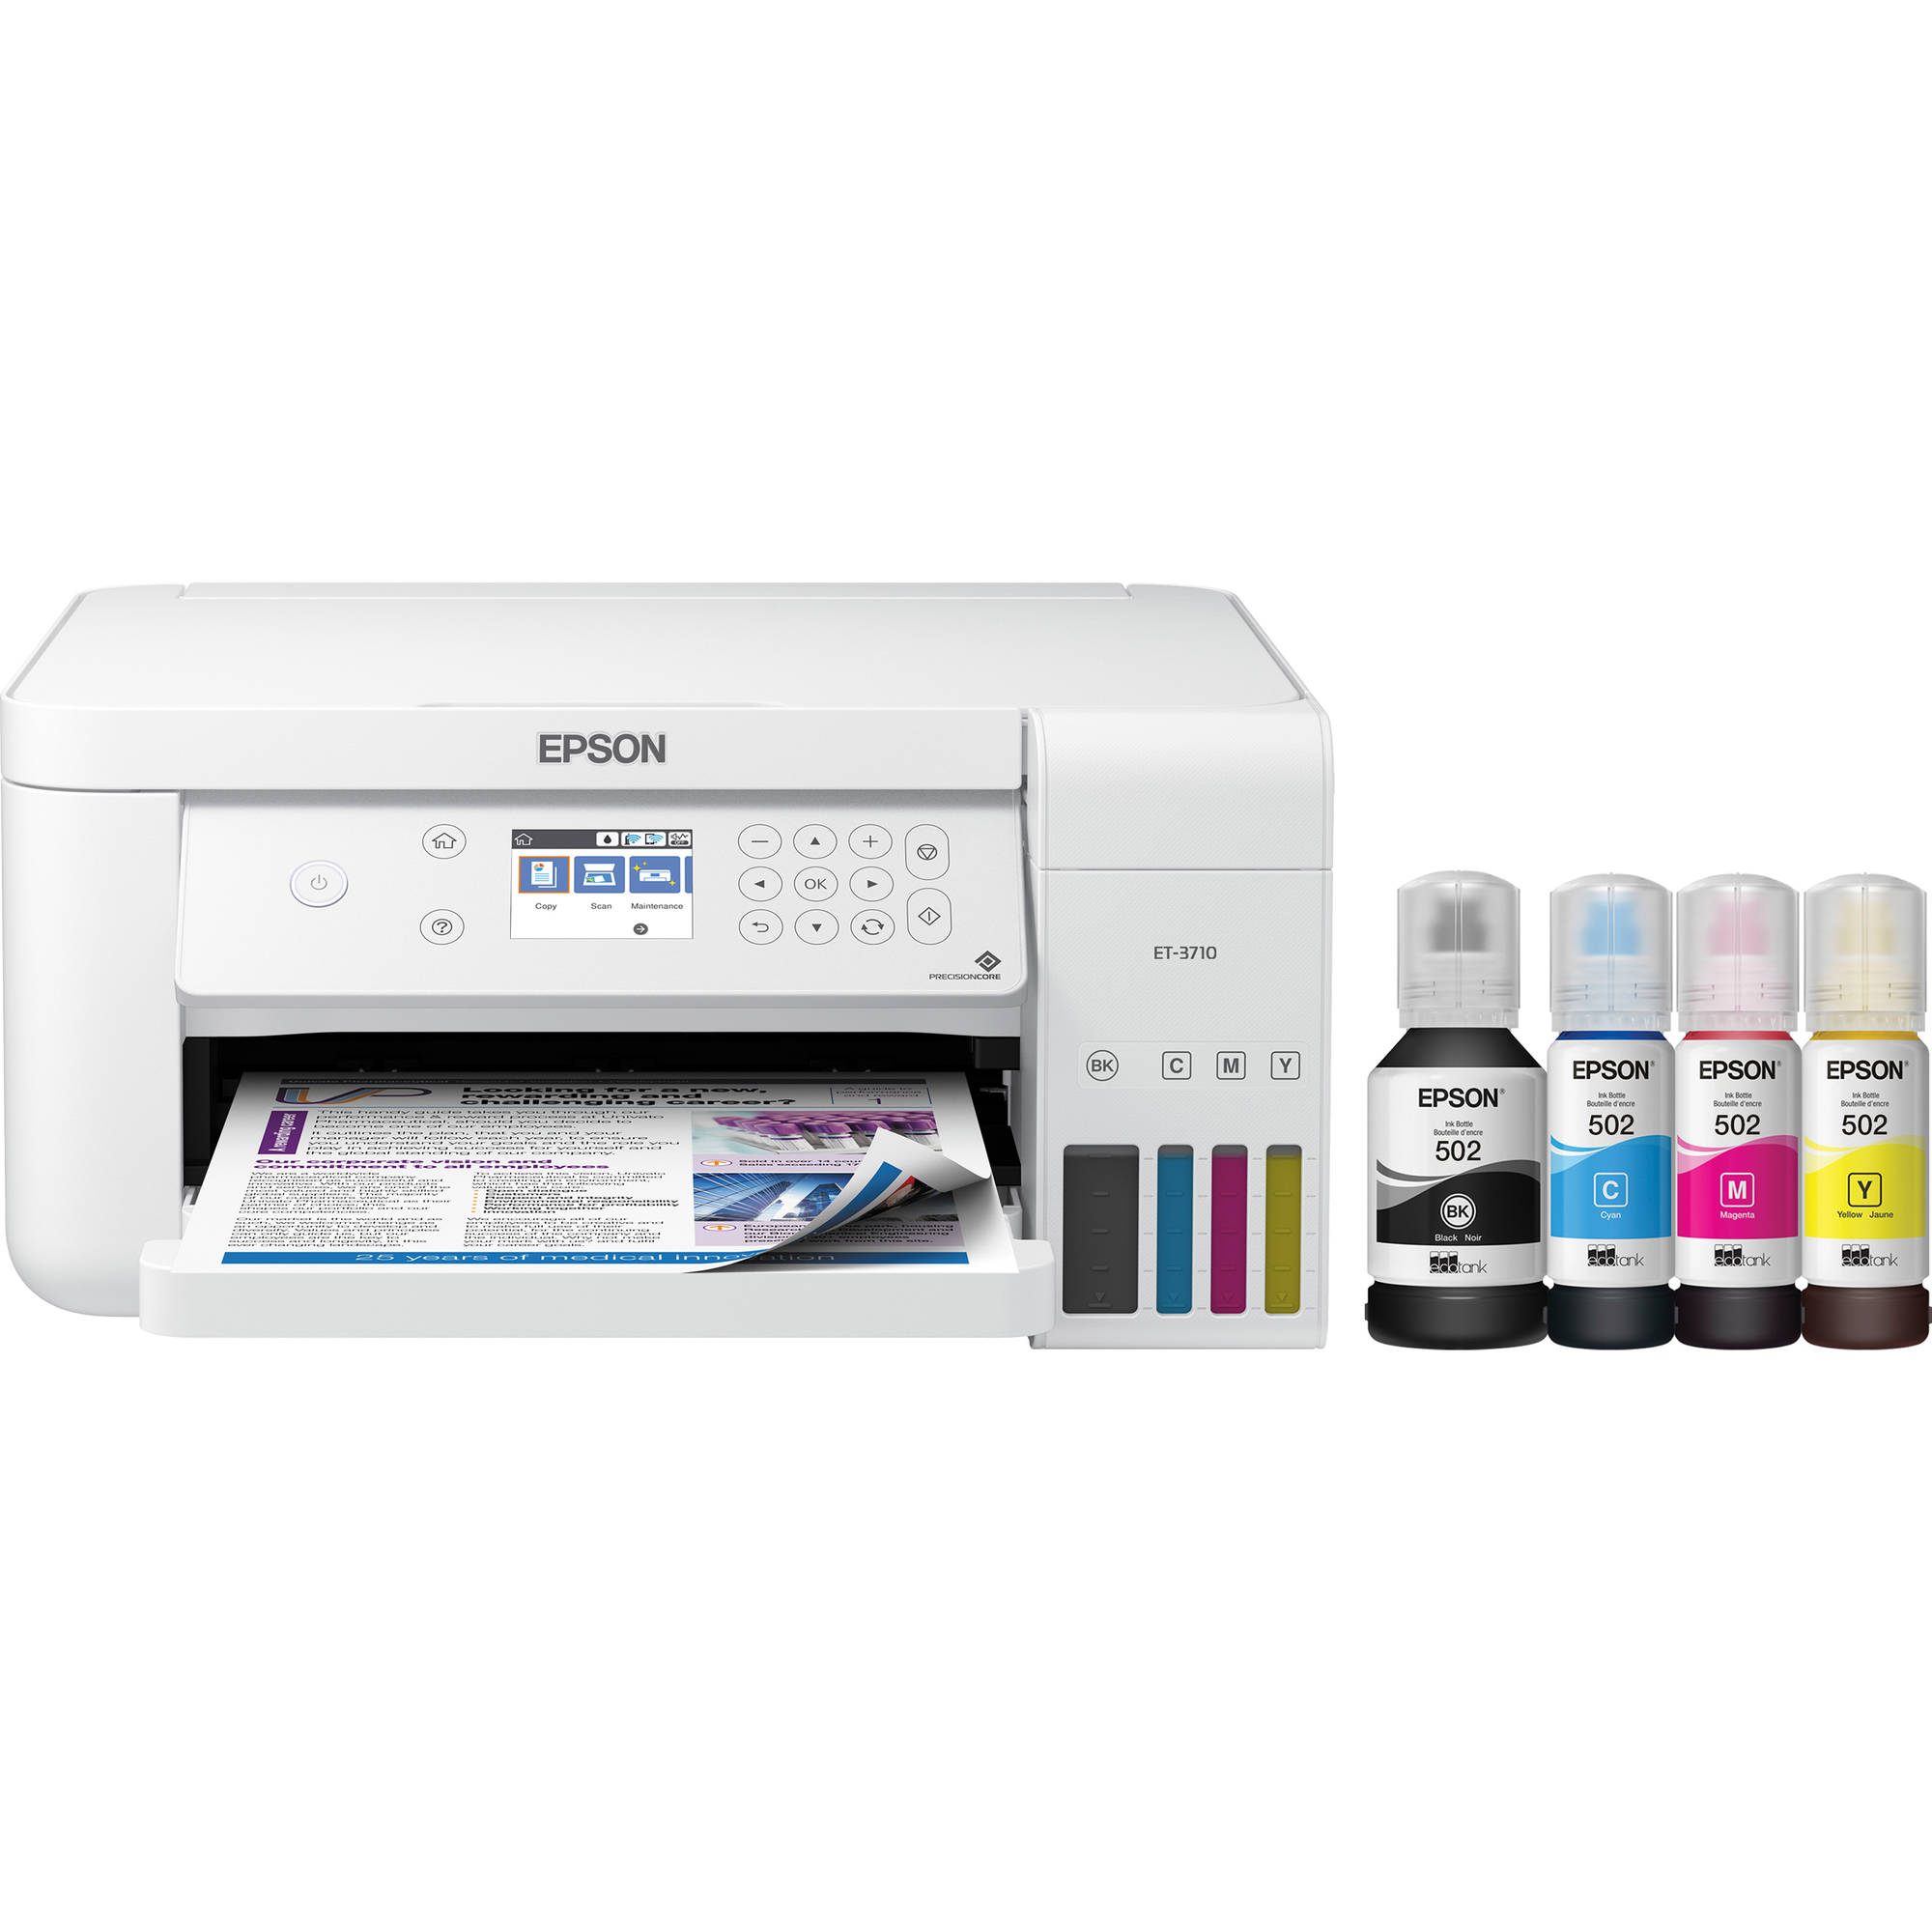 Epson EcoTank ET-3710 All-in-One Supertank Printer (White)